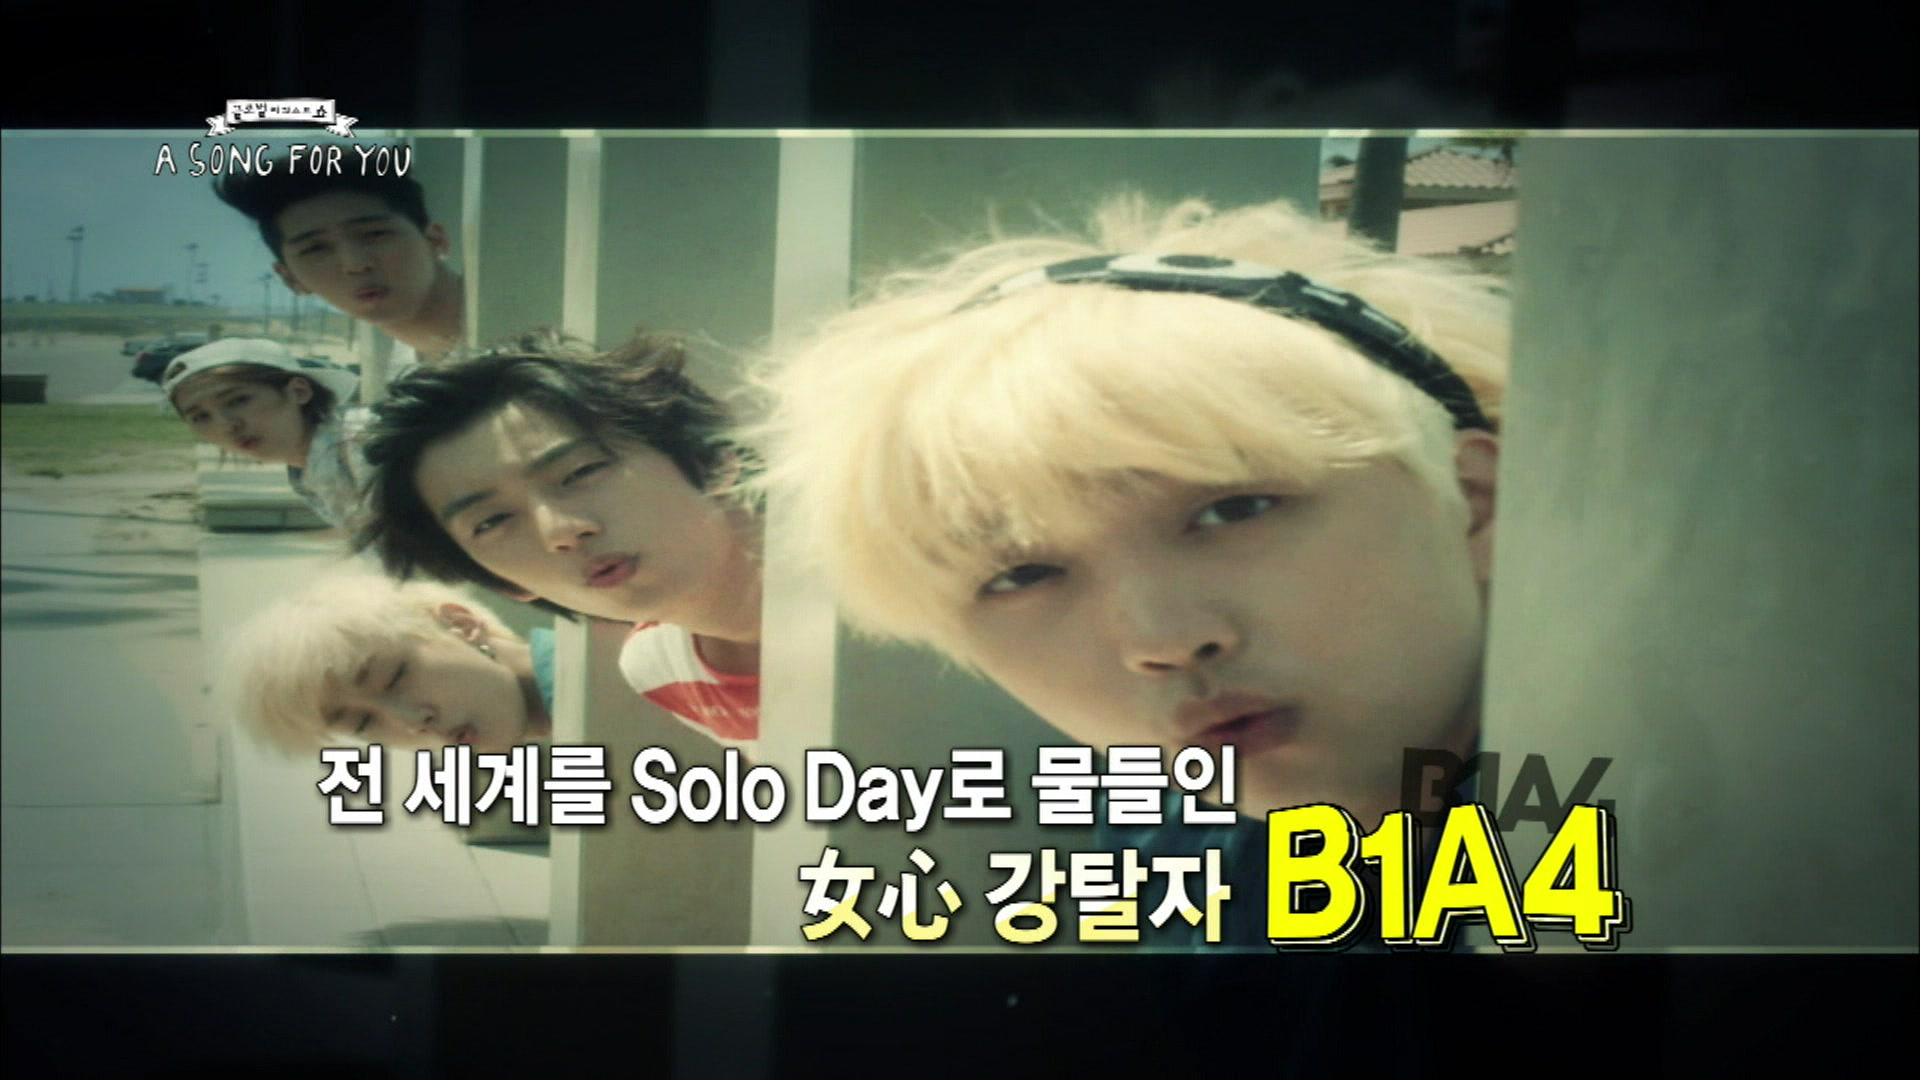 A Song For You Season 3 Episode 4: B1A4